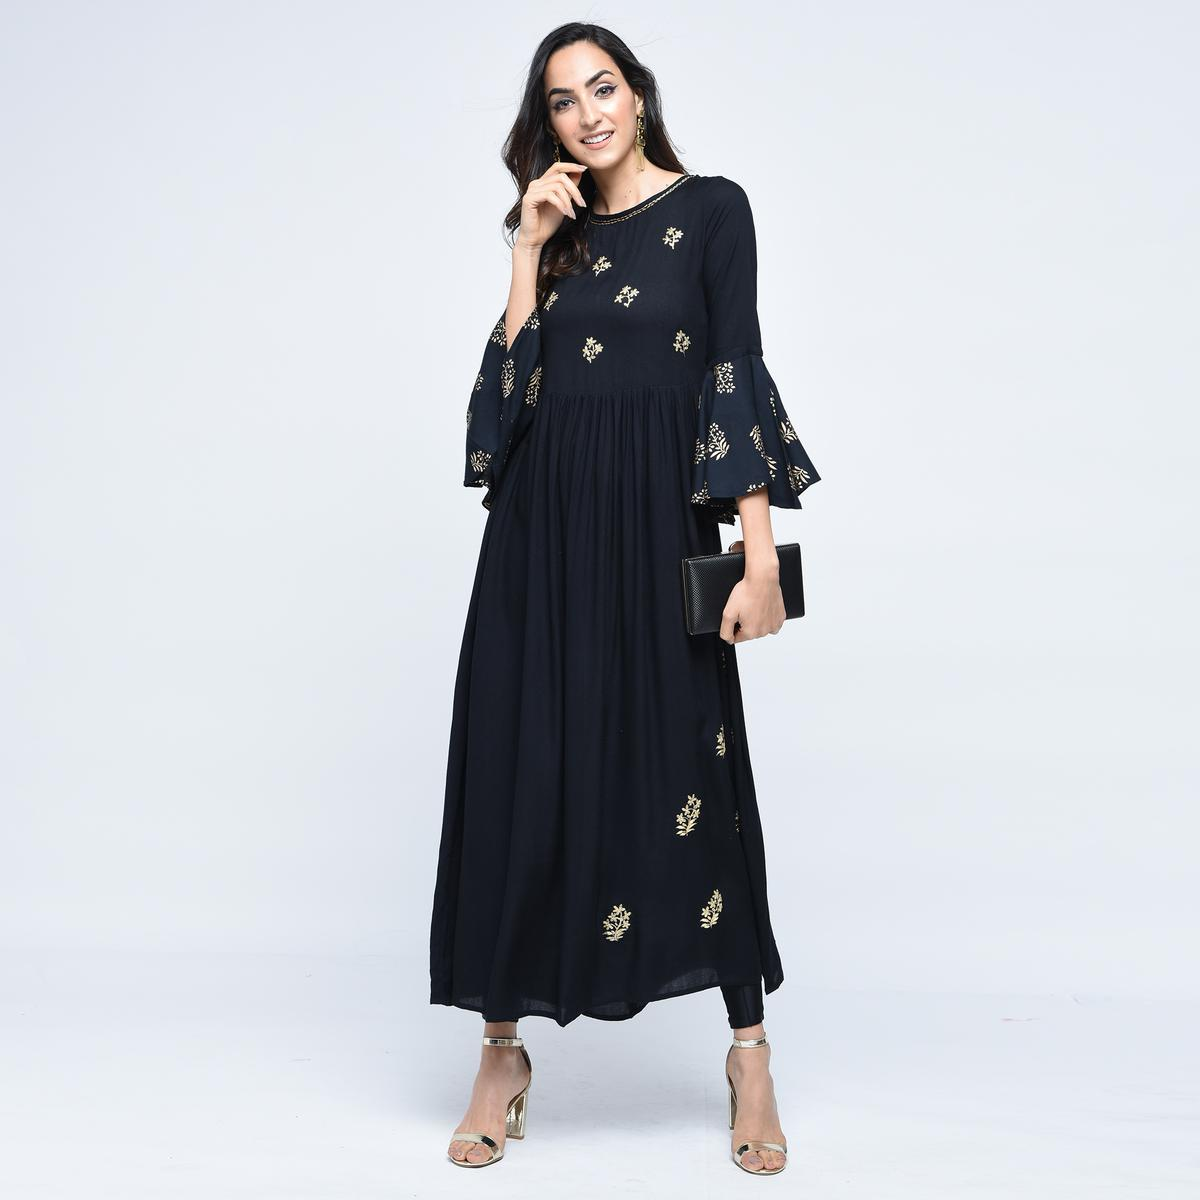 Stylum - Captivating Black Colored Partywear Embroidered Rayon Kurti